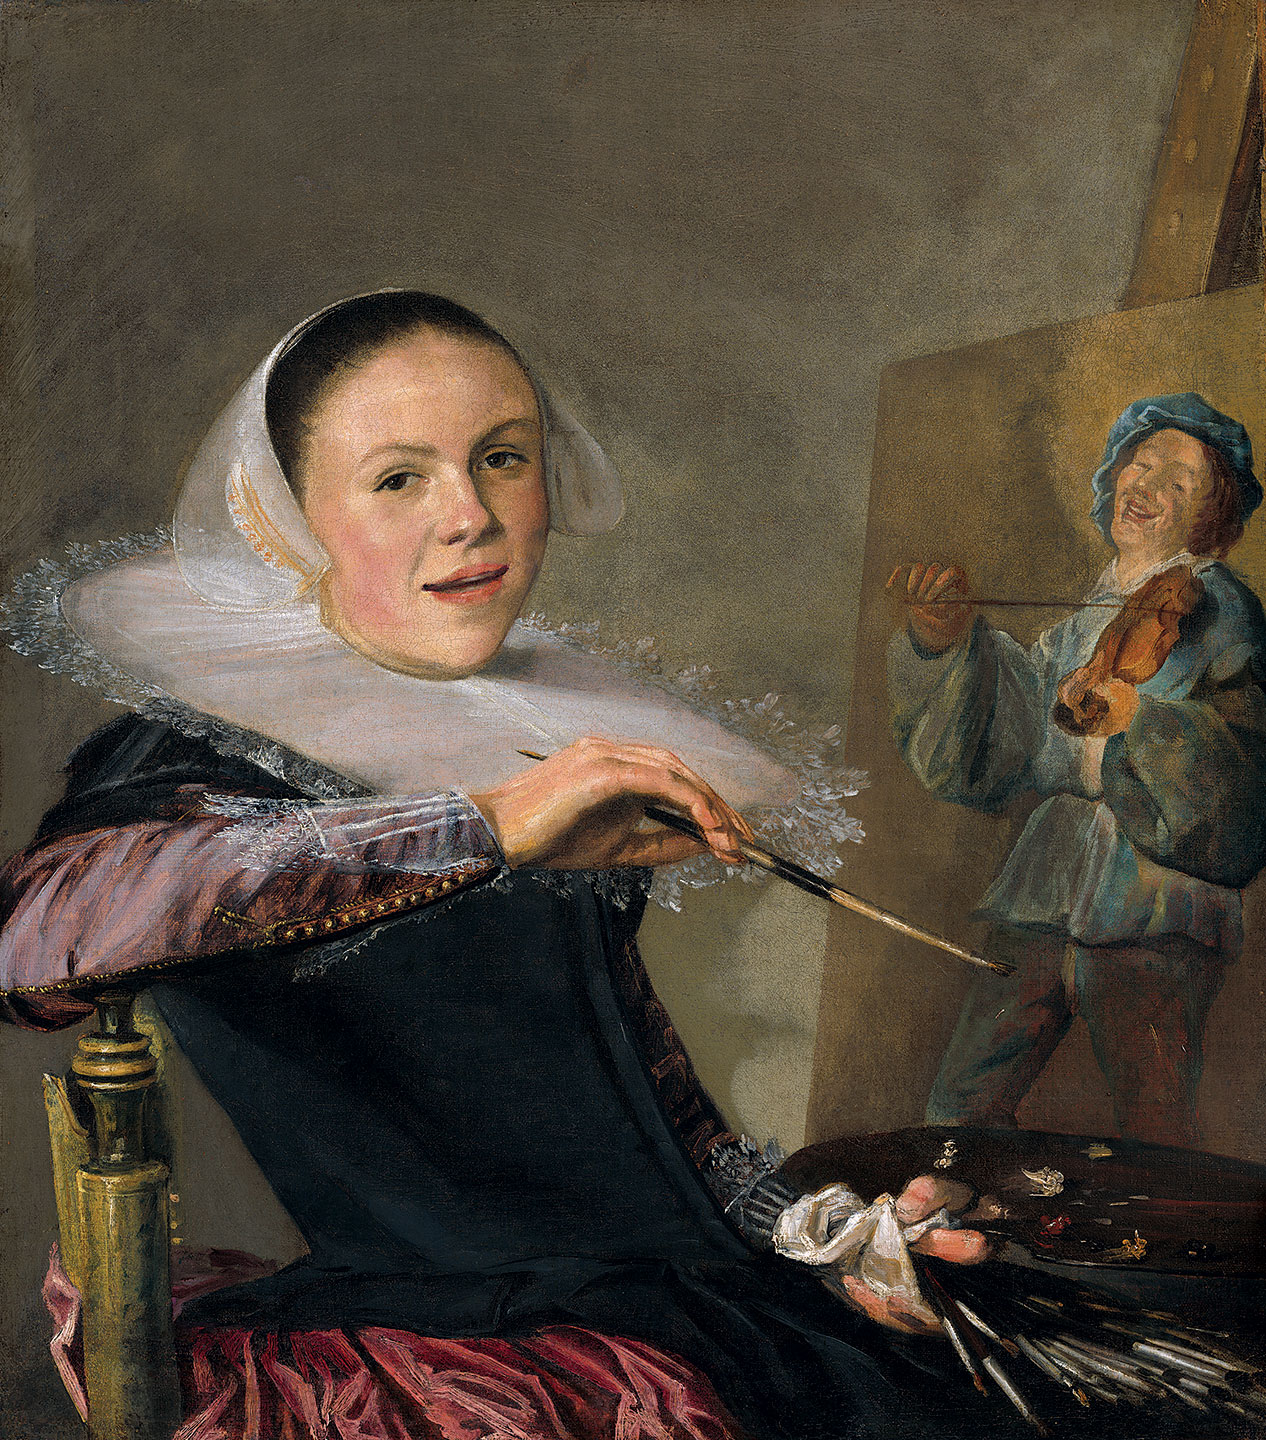 SELF-PORTRAIT by Judith Leyster, Dutch, of oil on canvas, circa 1630.  Gift of Mr. and Mrs. Robert Woods Bliss. Courtesy of the National Gallery of Art.